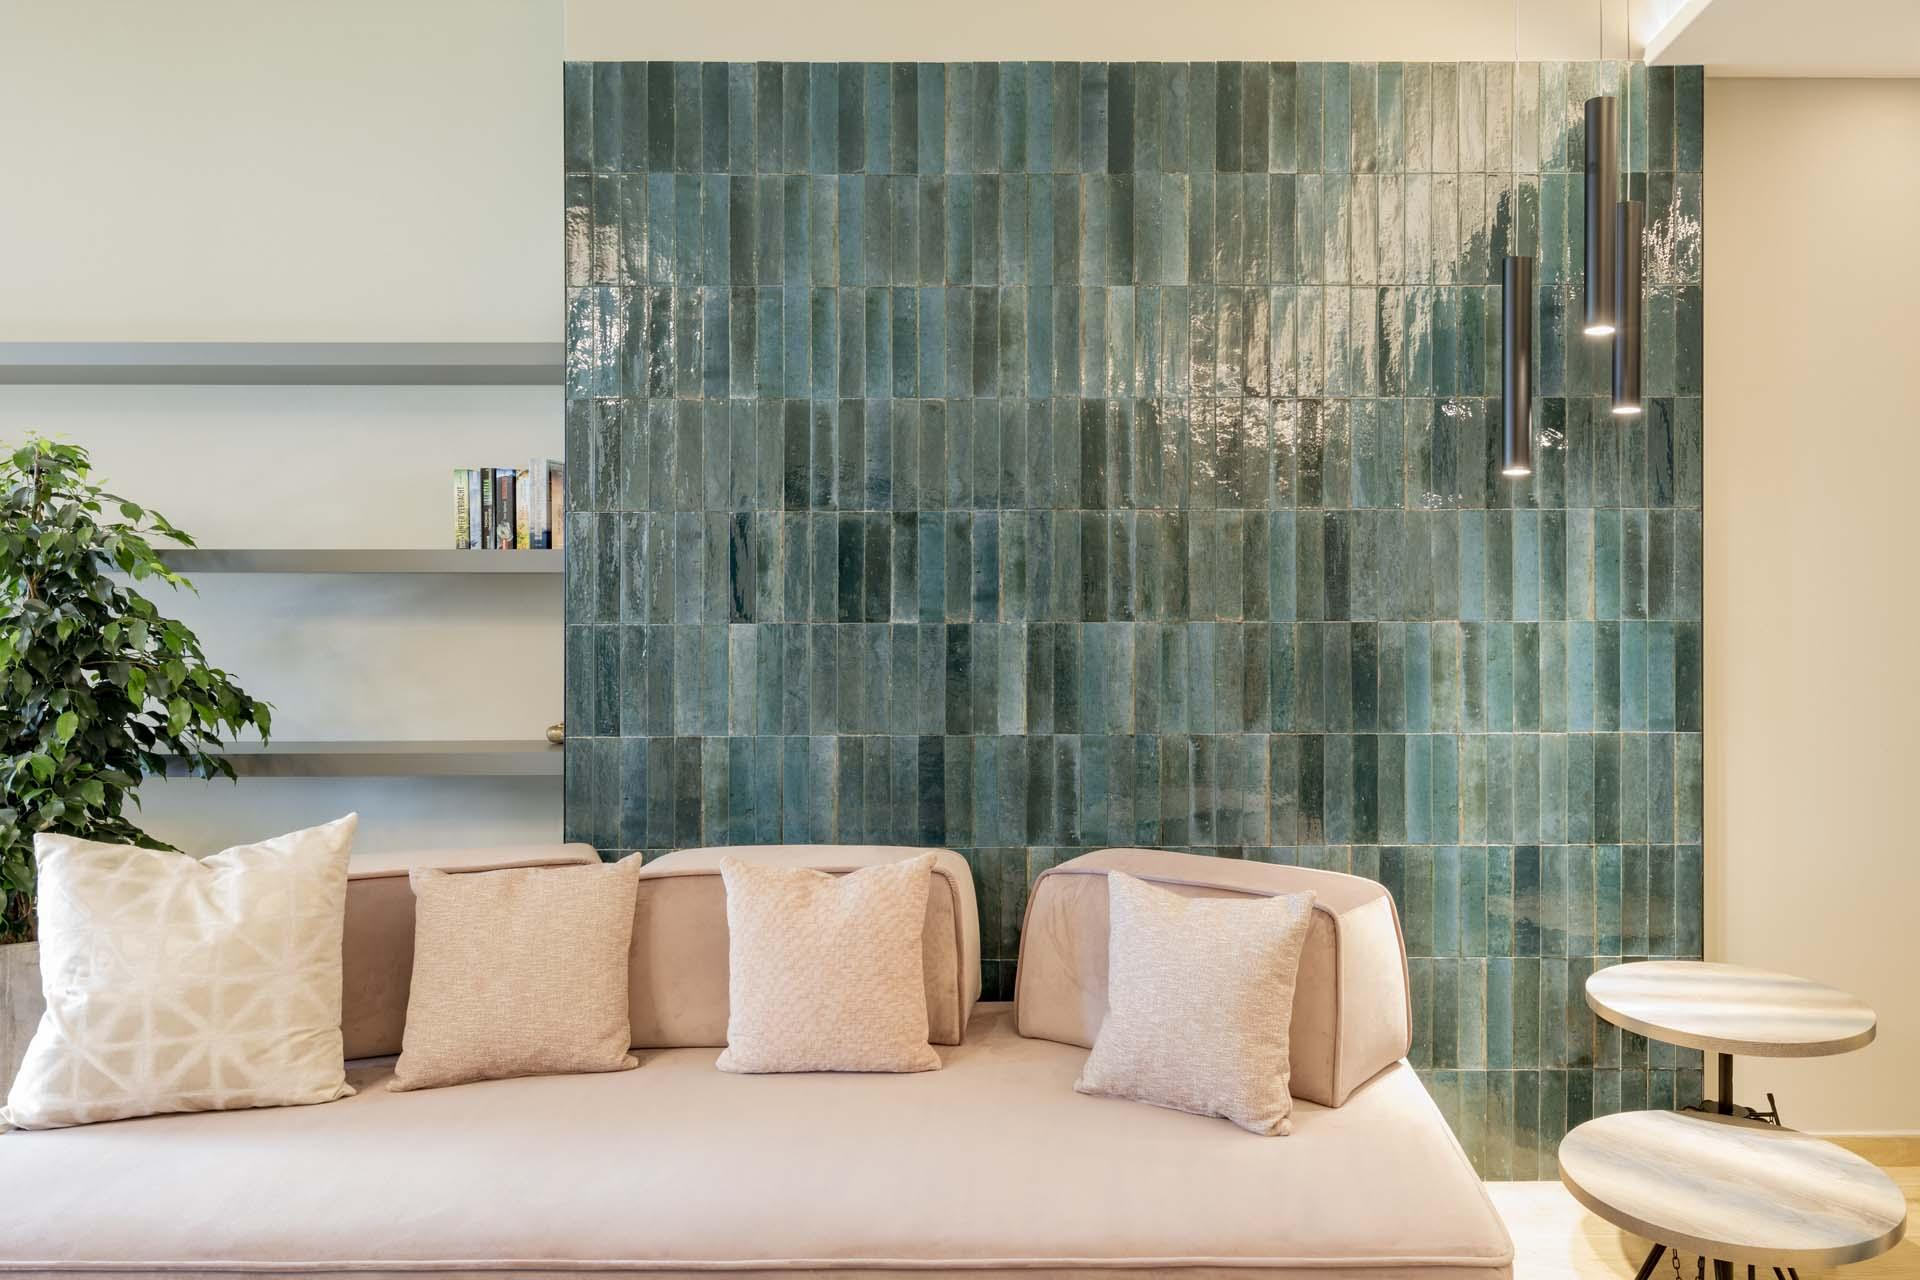 Hotel Du Lac: stoneware interiors in elegant, personalised suites